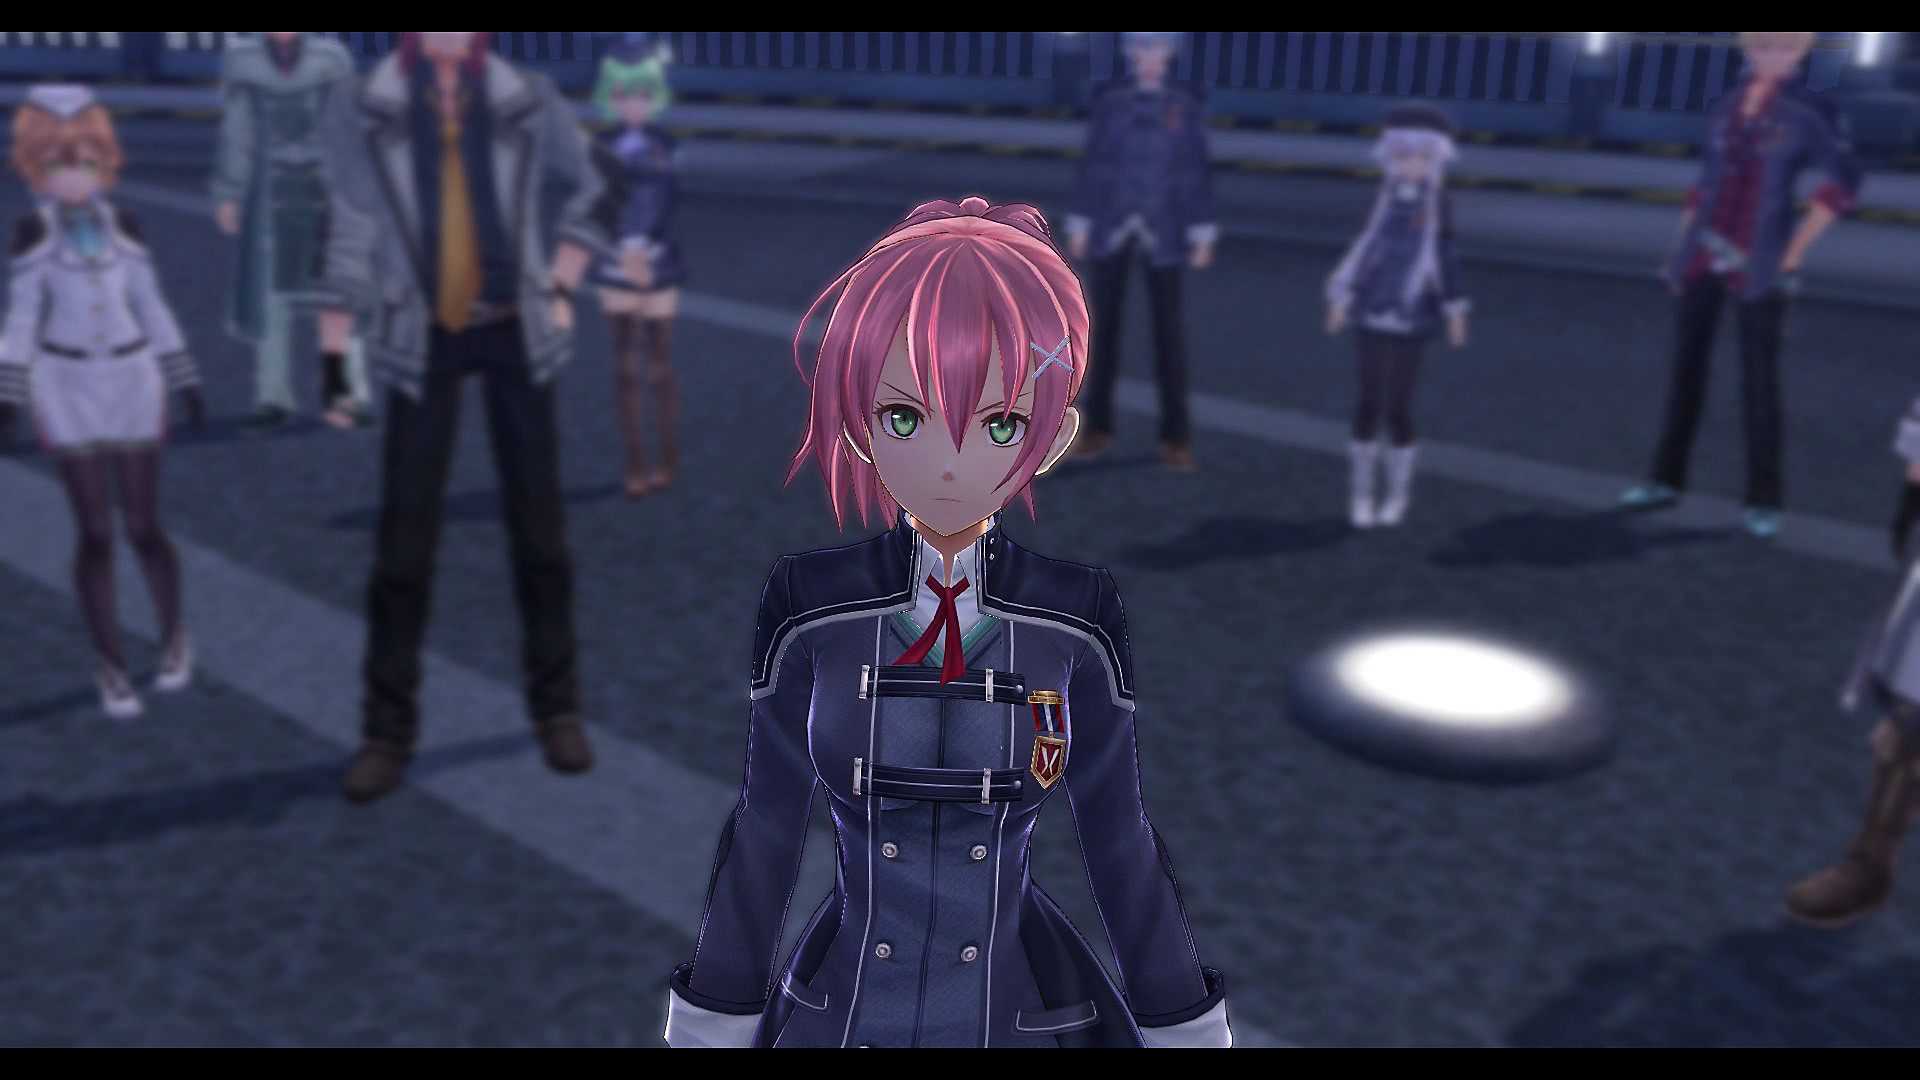 Pink-Haired Character Stares into the Camera